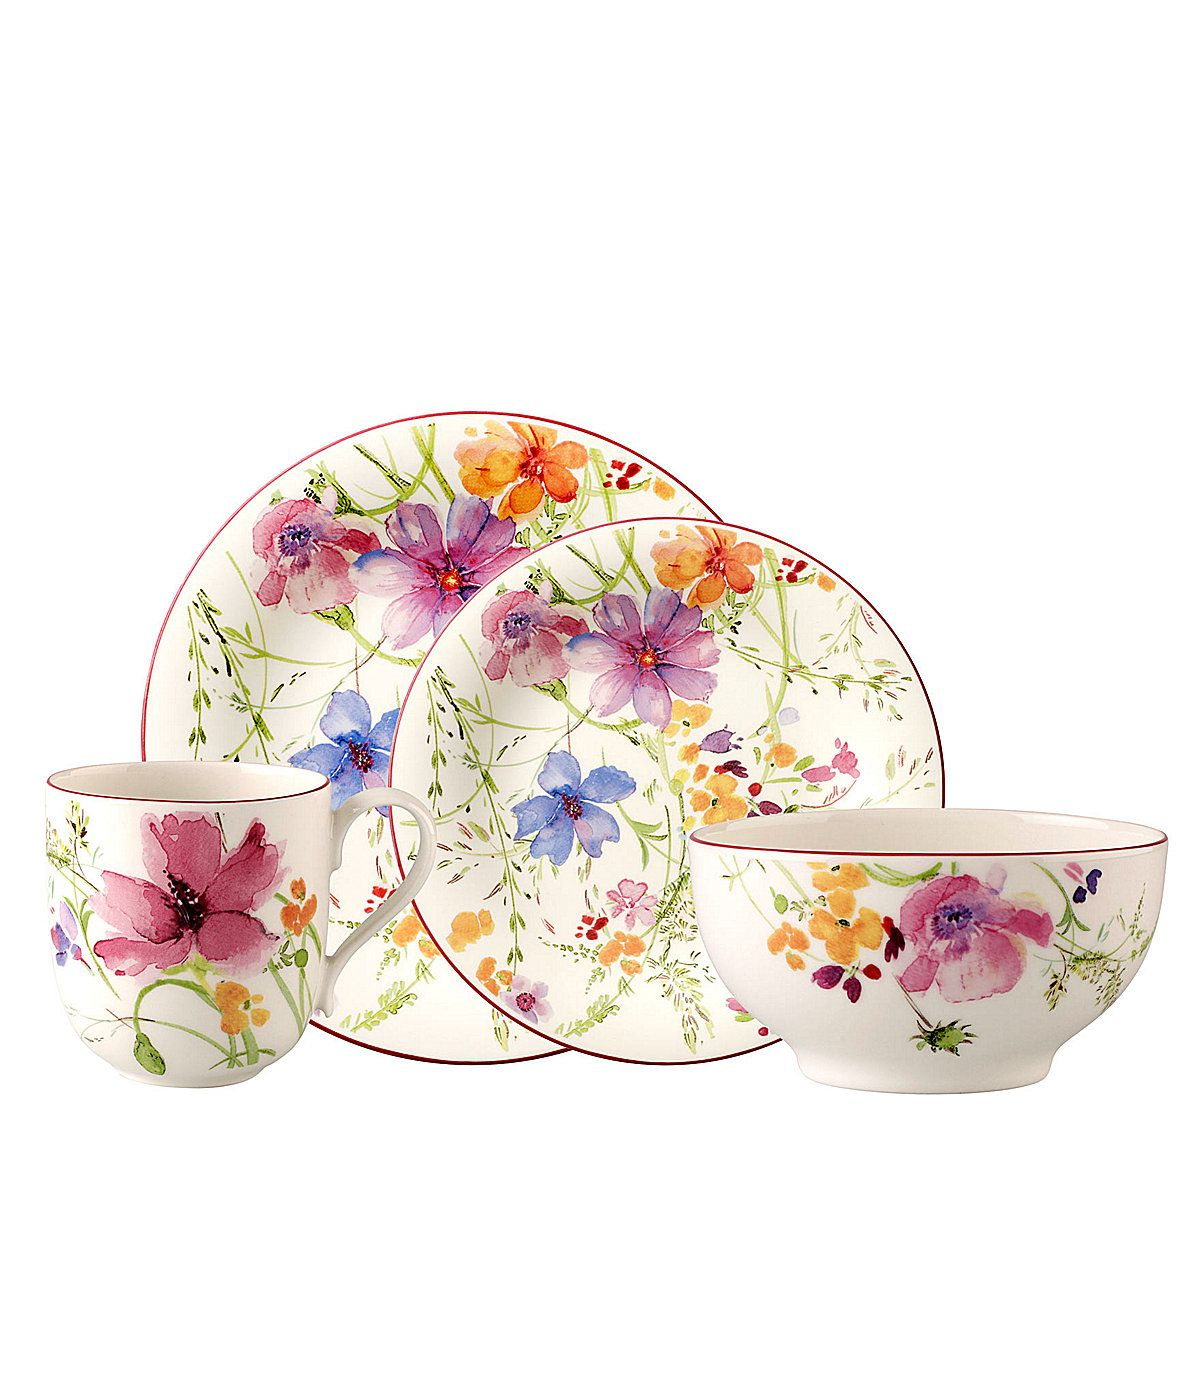 villeroy boch mariefleur dinnerware dinnerware dish sets pinterest. Black Bedroom Furniture Sets. Home Design Ideas